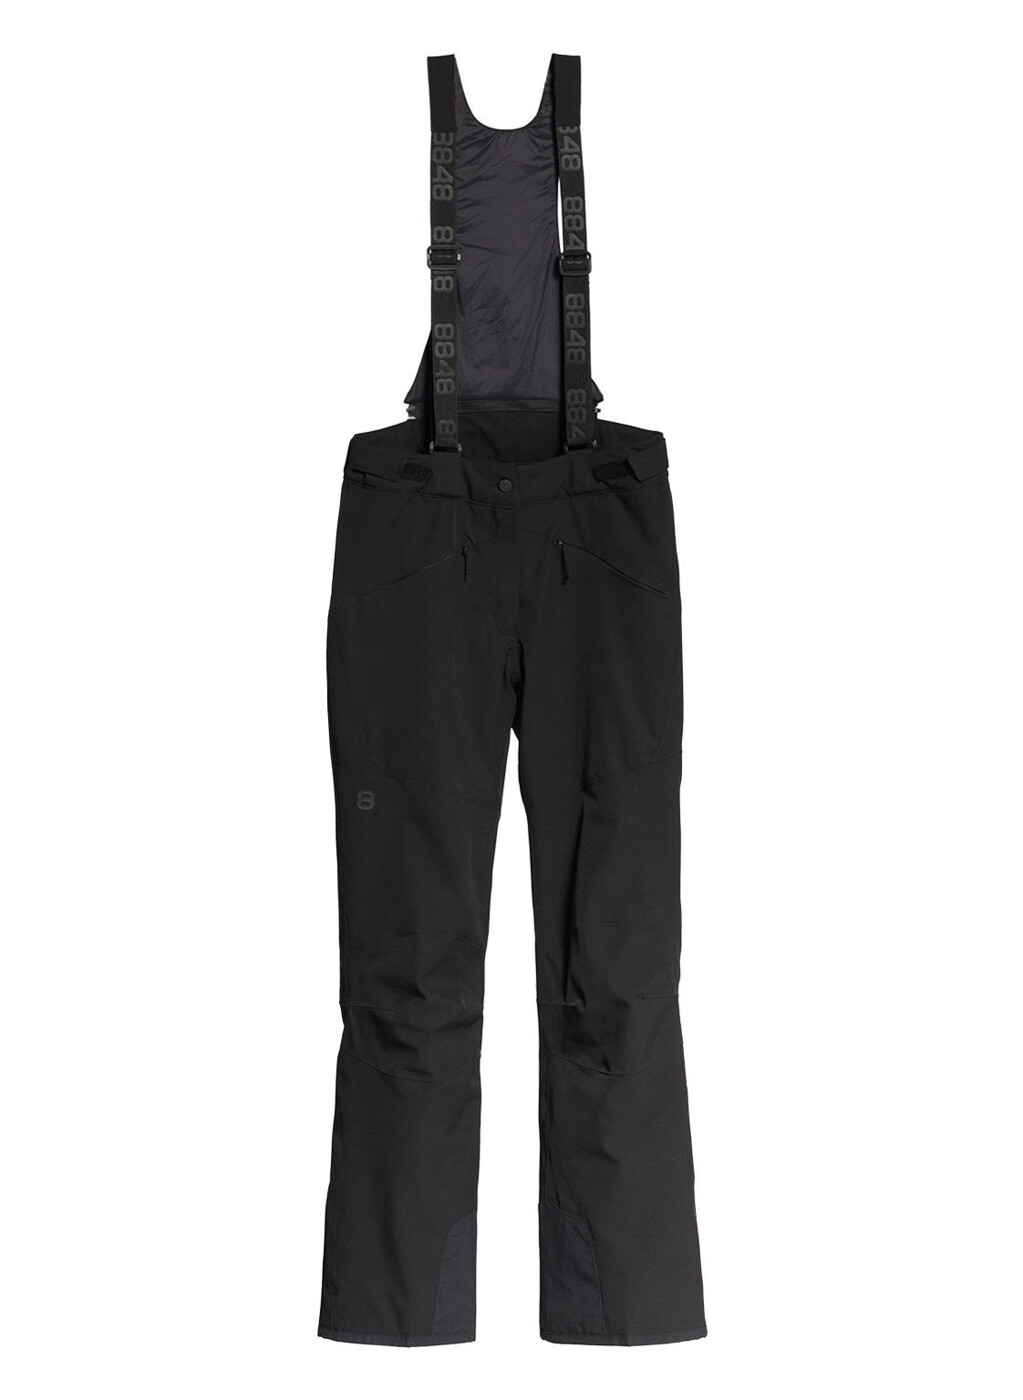 8848 ALTITUDE Poppy Pant D - Damen